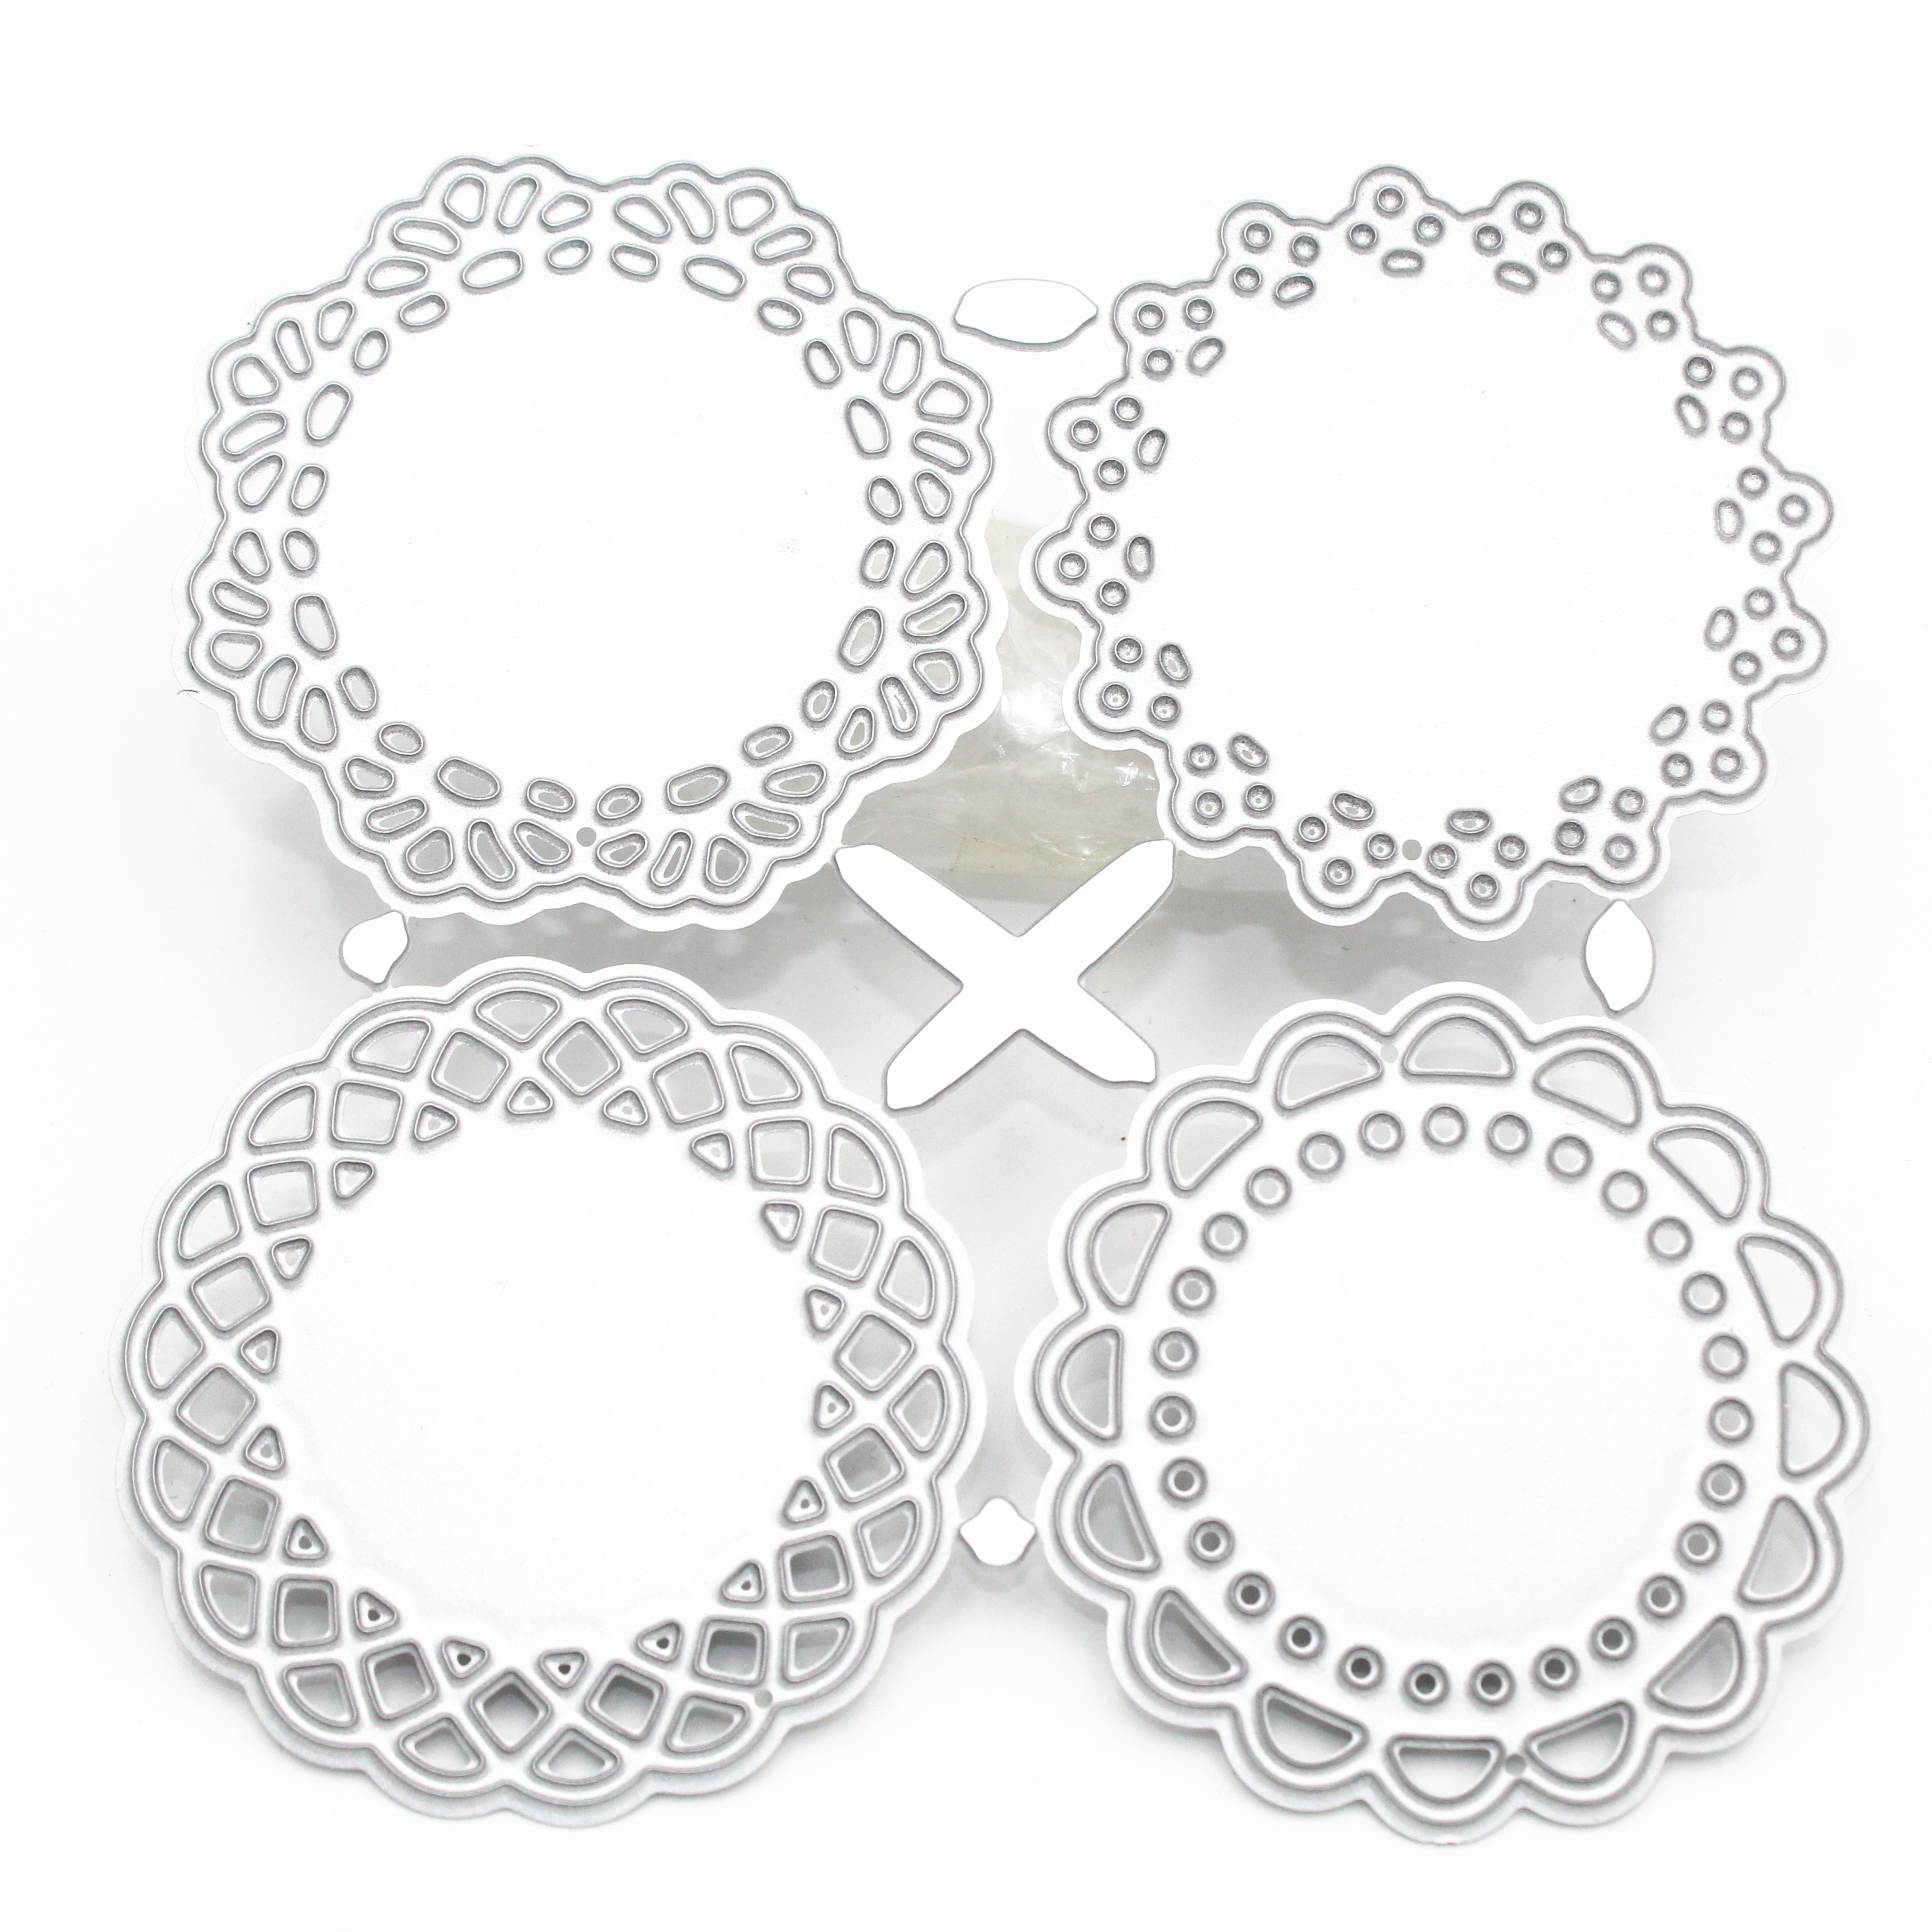 4Pcs Lace Edge Circle Frame Metal Cutting Die Stencils For DIY Scrapbooking Album Decorative Embossing Hand-on Paper Cards